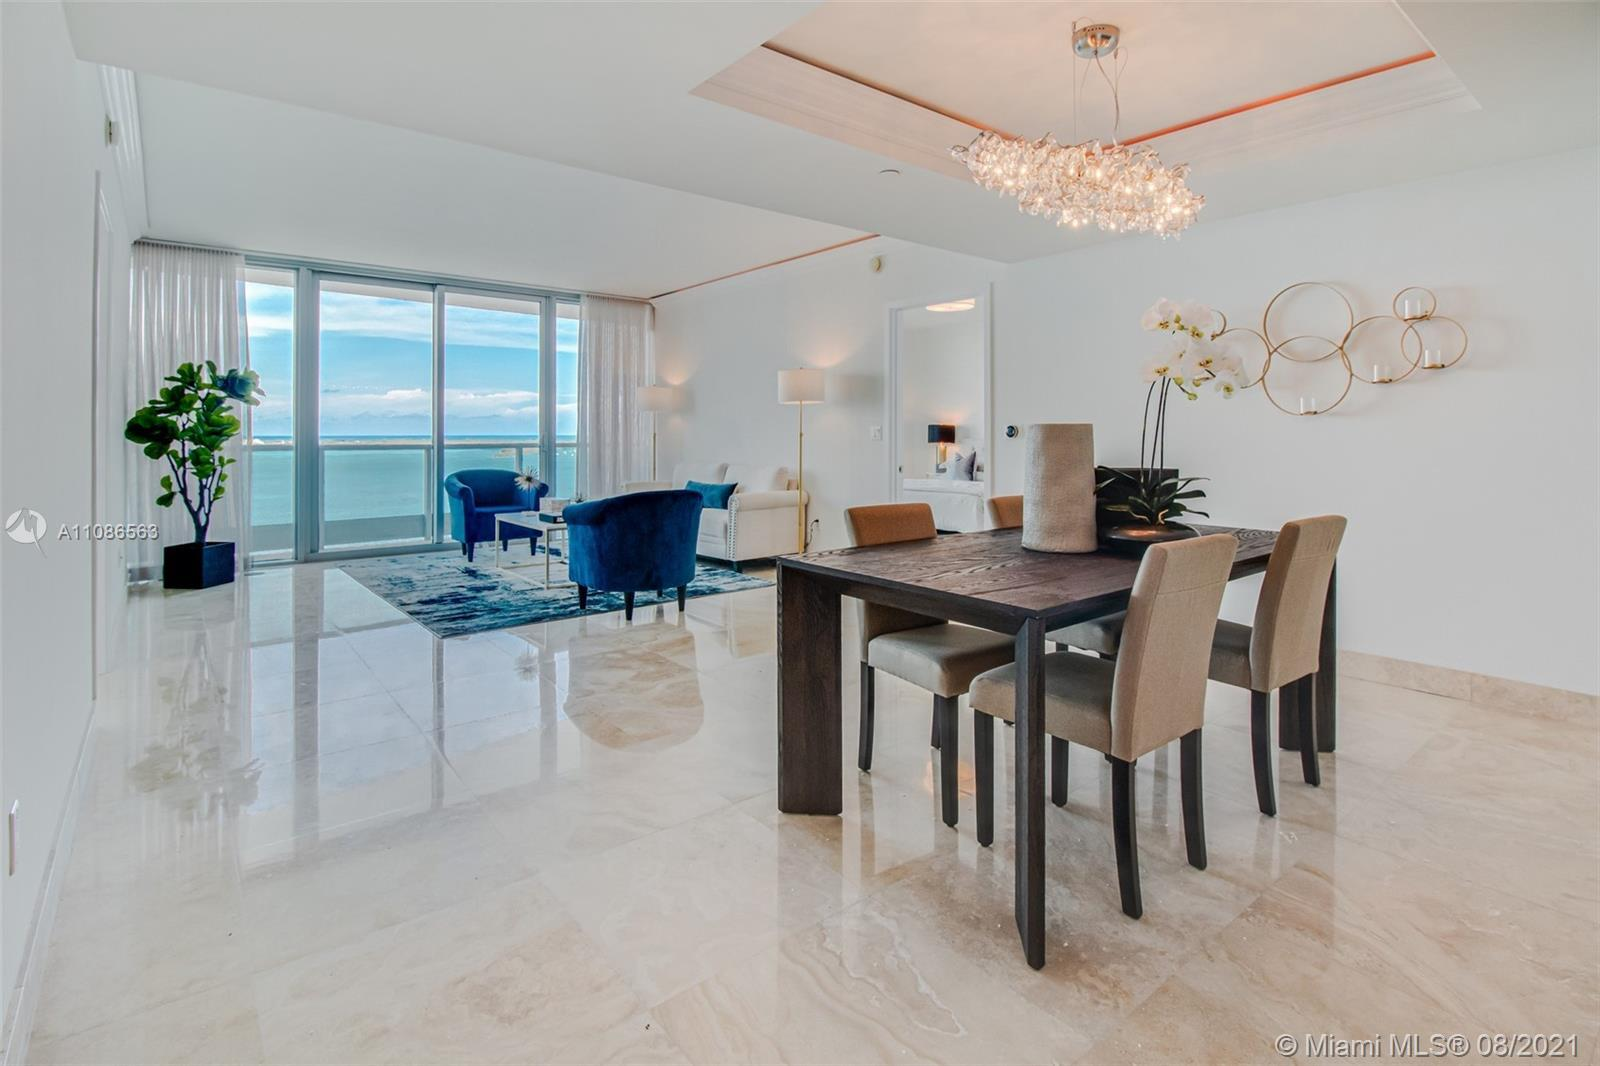 Live limitlessly at this stylish unit at the Jade Brickell - a spacious 1,730sf interior unit with f